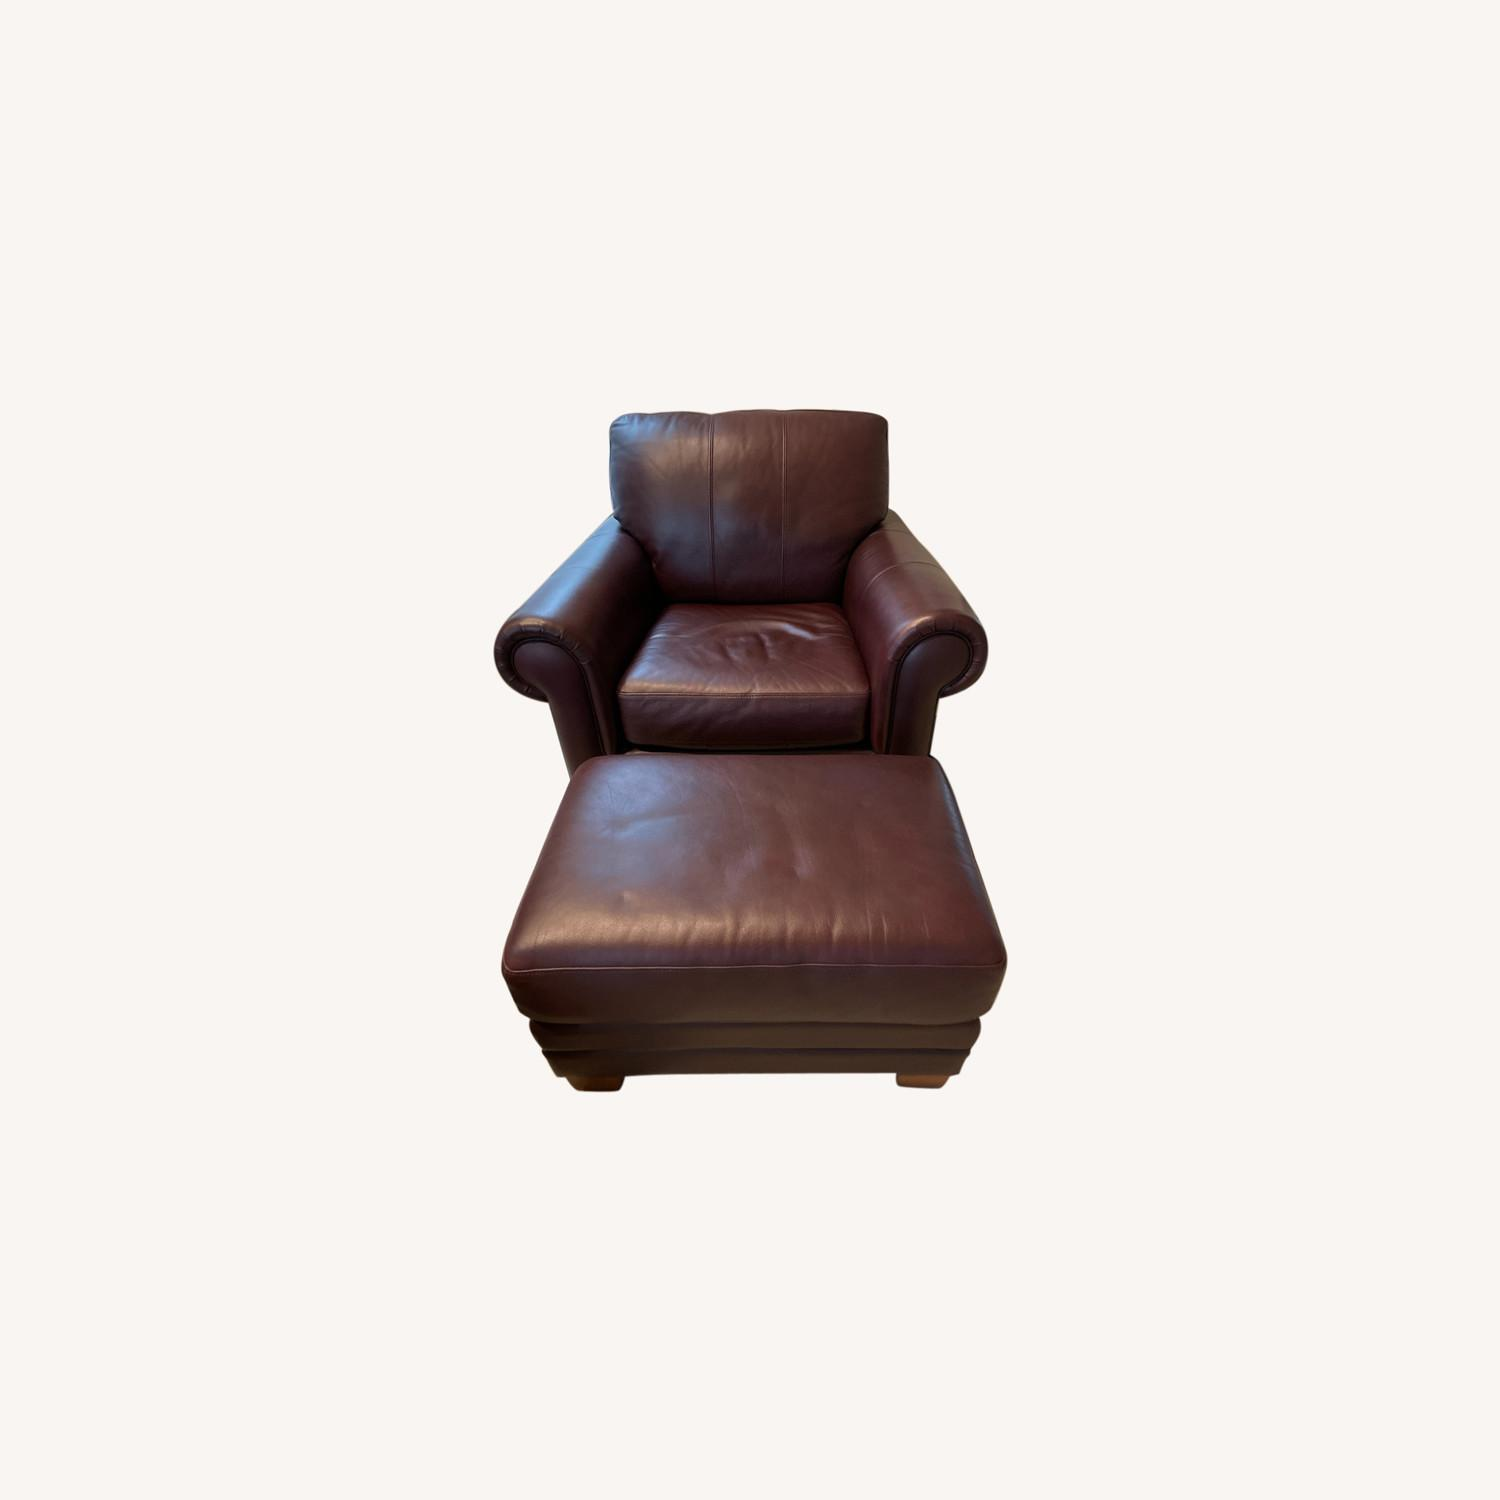 Ethan Allen Leather Chair & Ottoman - image-0